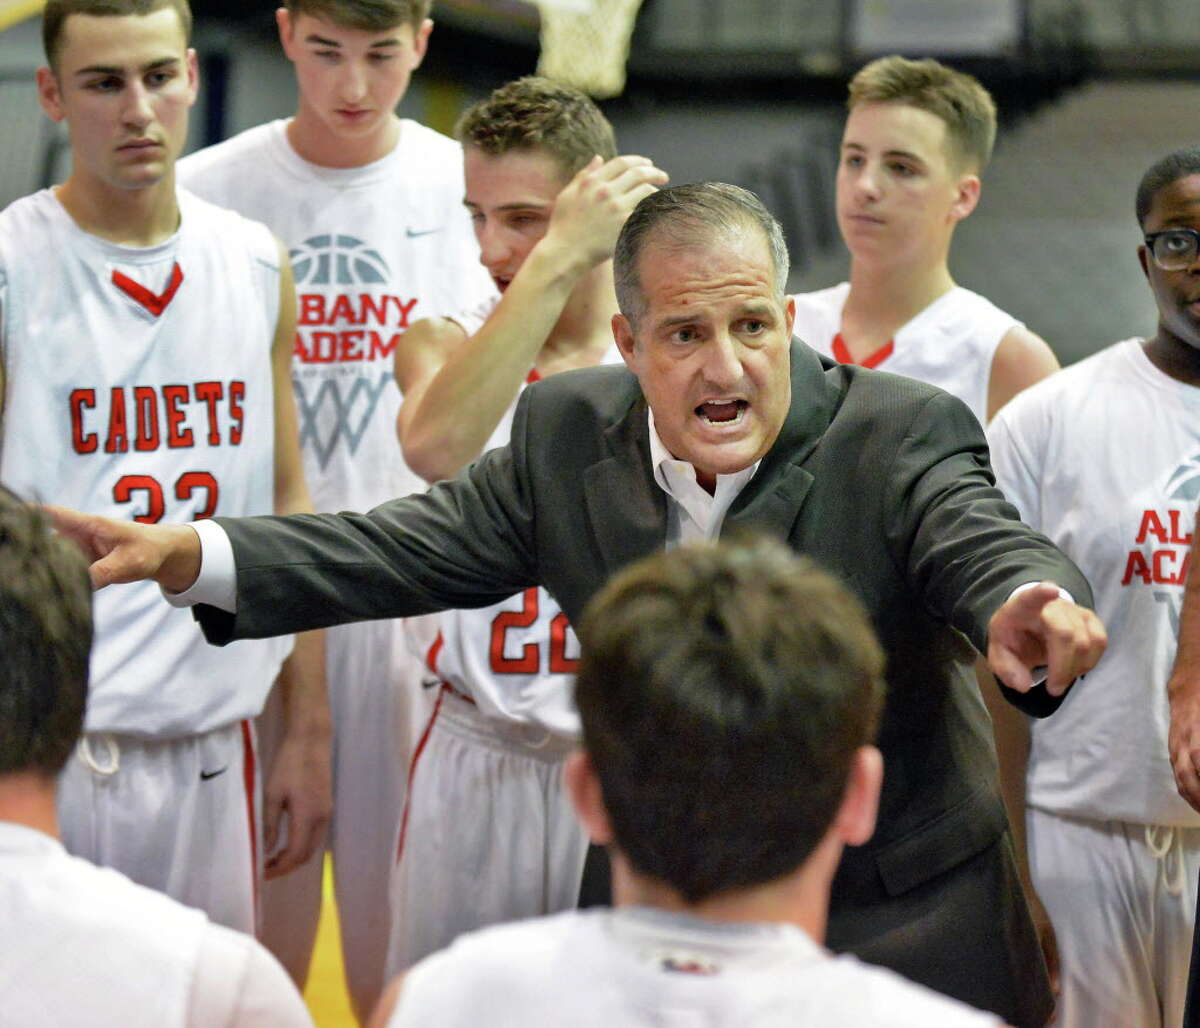 Albany Academy head coach Brian Fruscio with players during a time out in the Class A Boys' Federation Tournament final against Canisius at the SEFCU Arena Saturday March 28, 2015 in Albany, NY. (John Carl D'Annibale / Times Union)